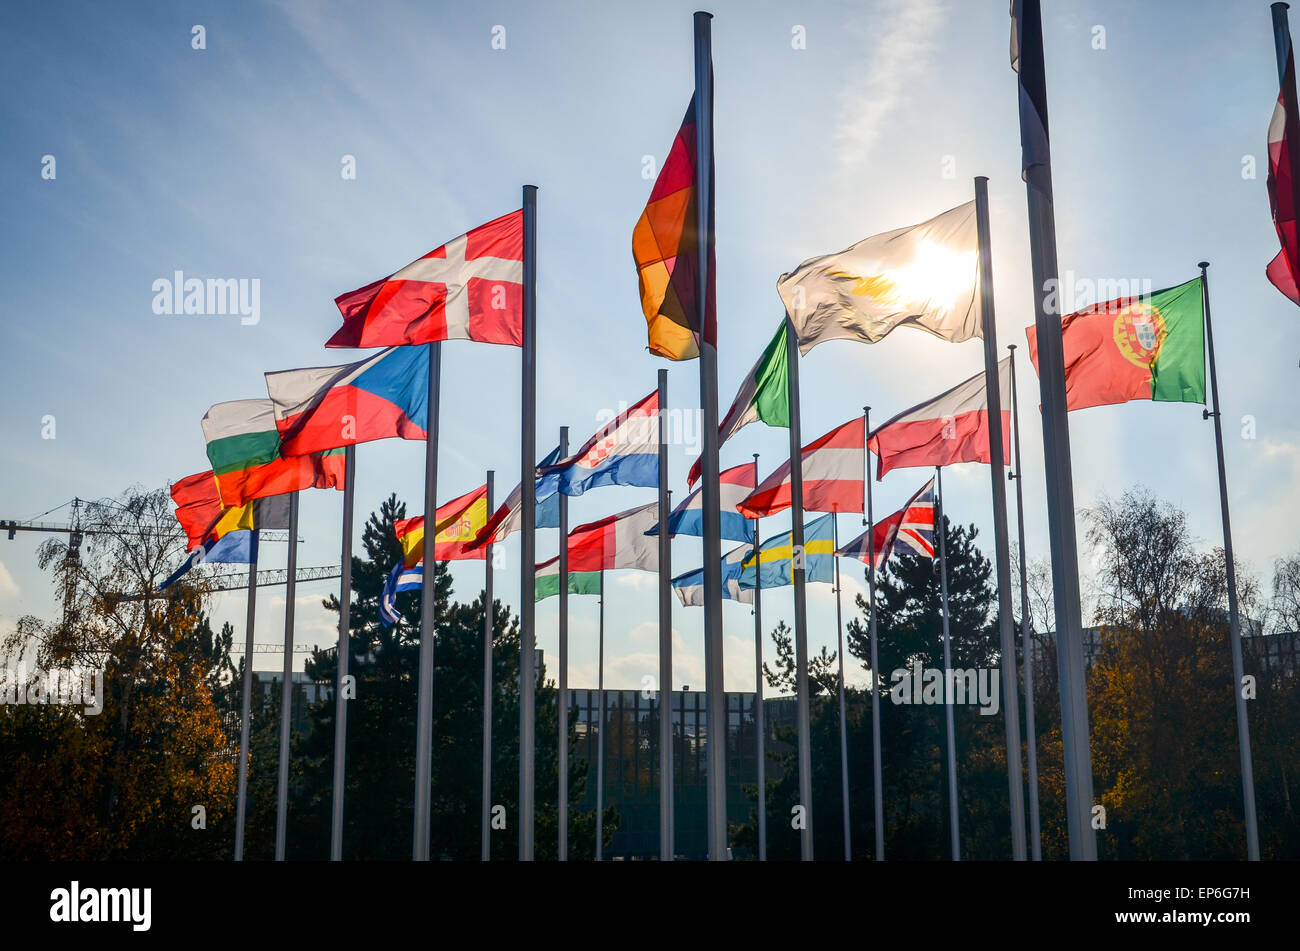 Flags of the European Union countries at the European Commission, European Quarter, Luxembourg - Stock Image